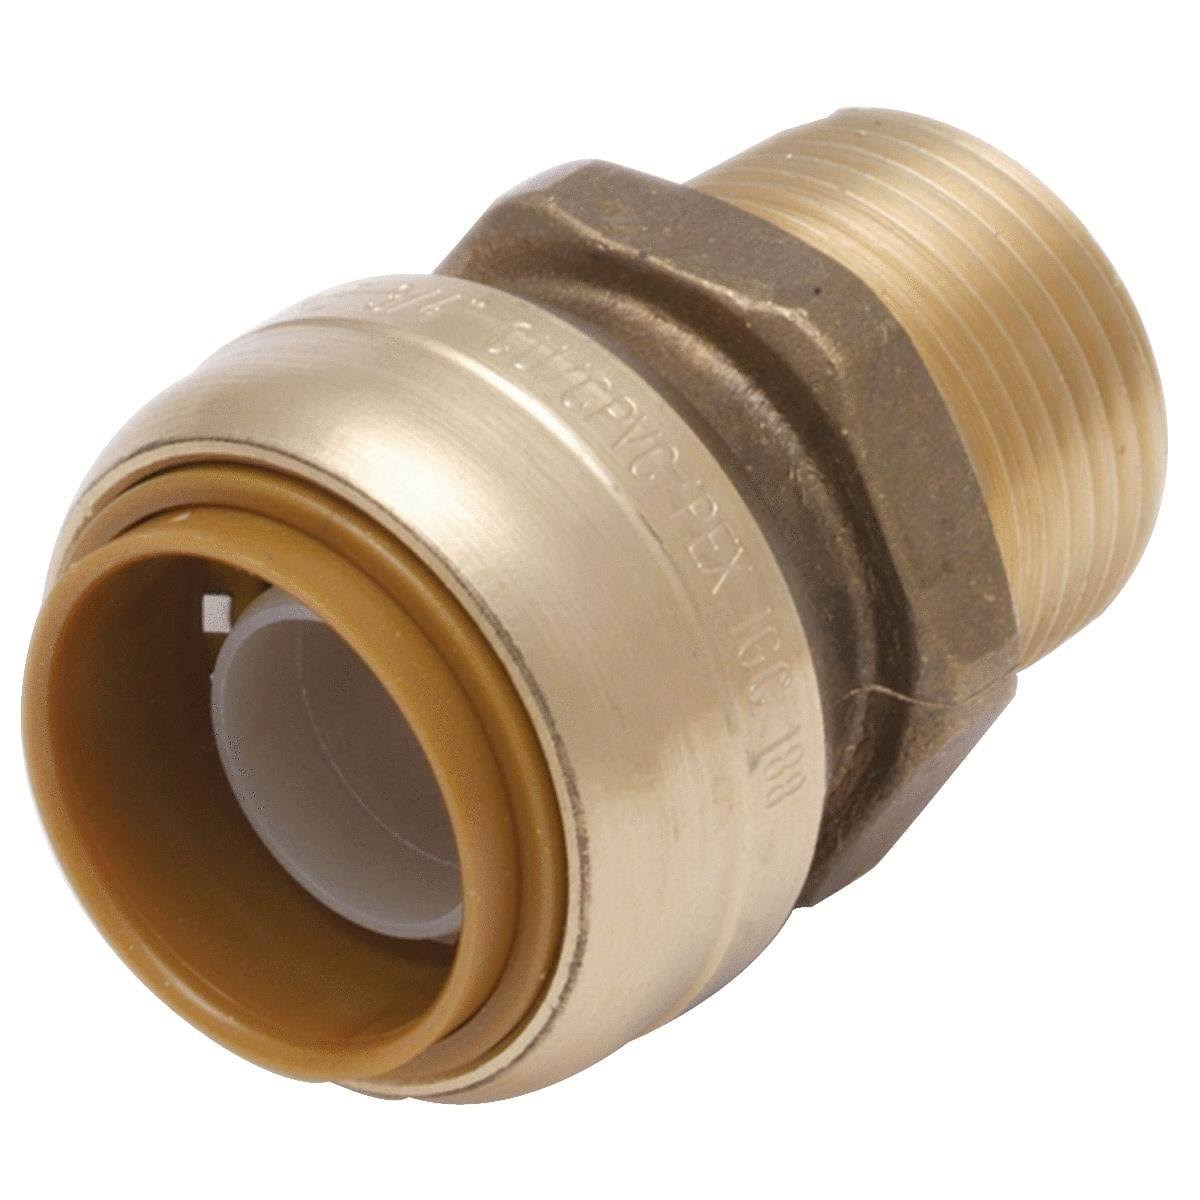 "SharkBite Push-to-Connect Male Pipe Thread - 1/2""x3/4"", Brass"